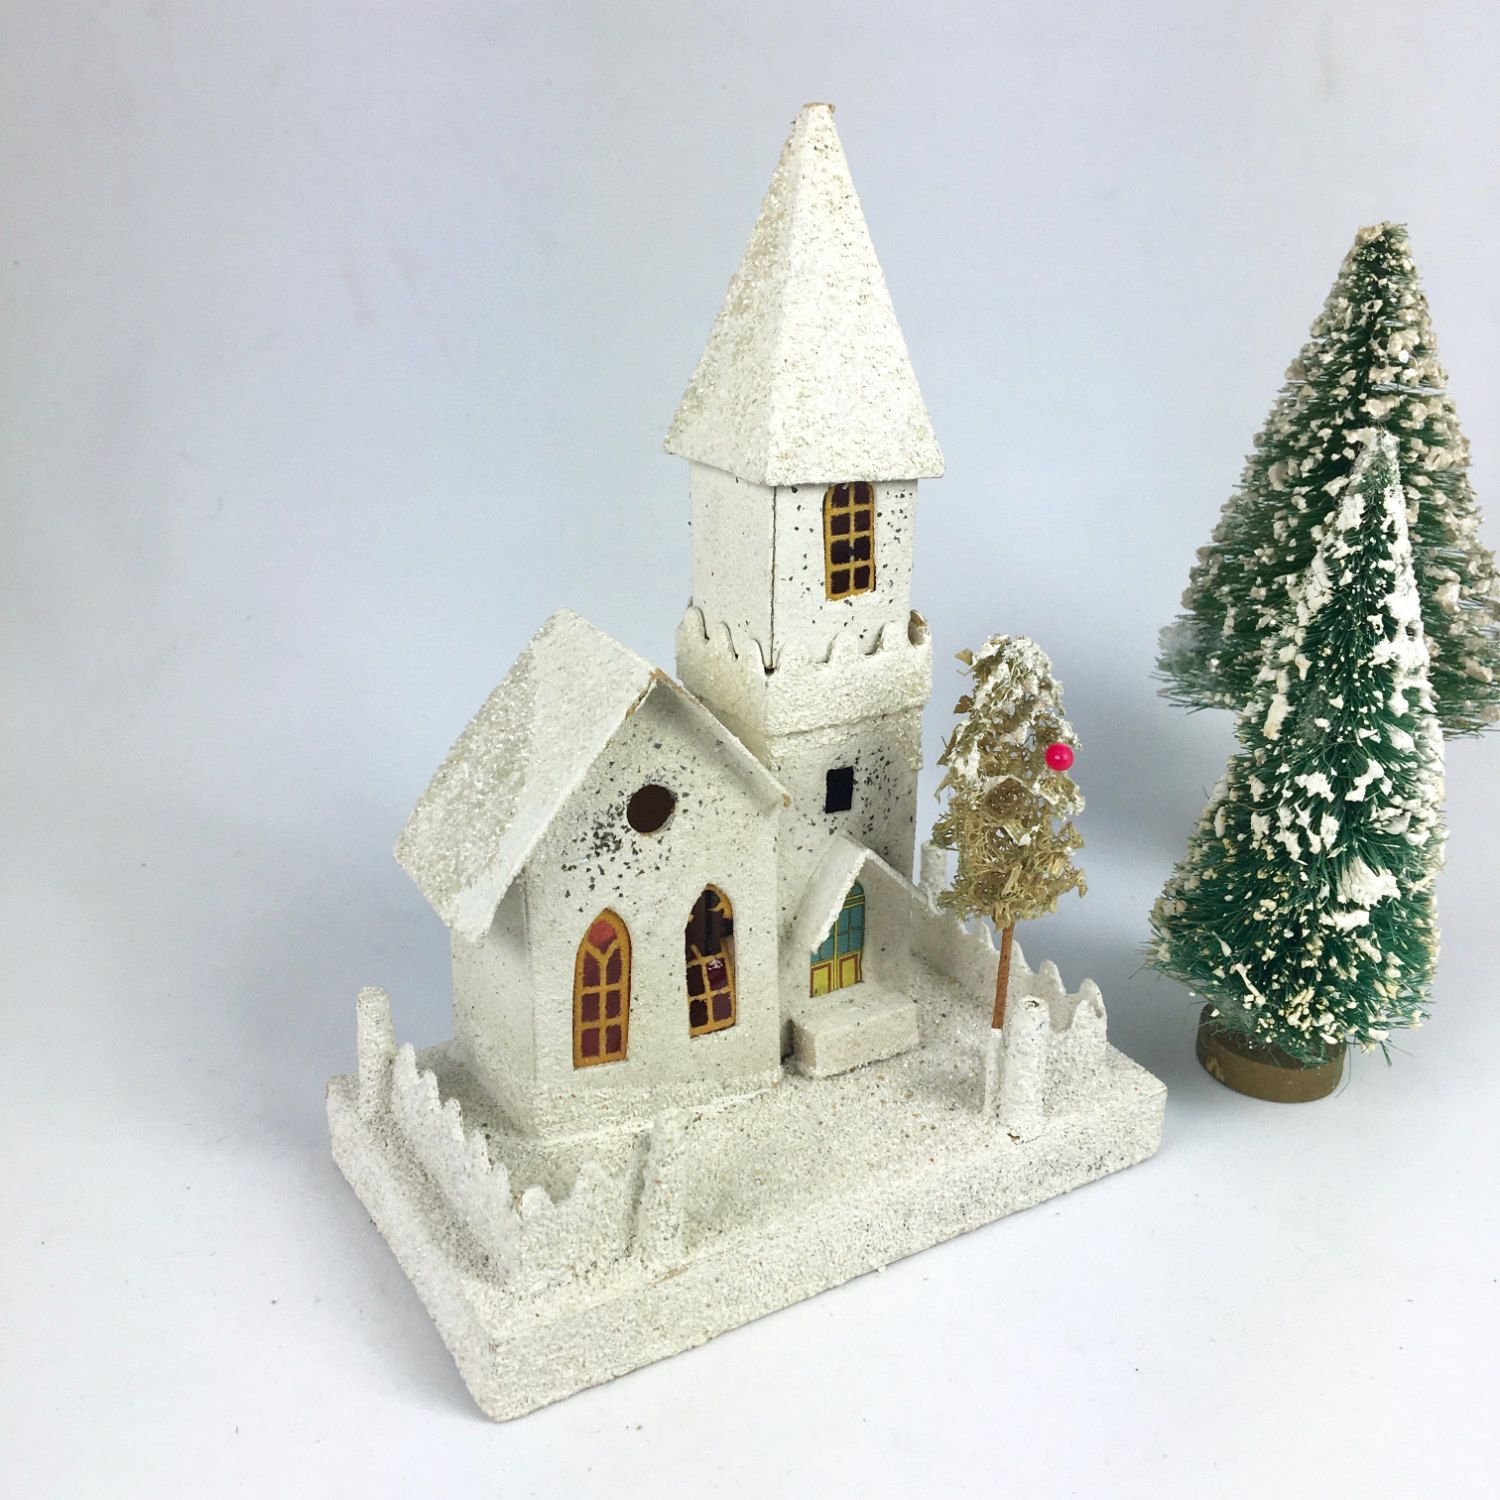 Vintage putz church with steeple and mica 1940s Christmas village